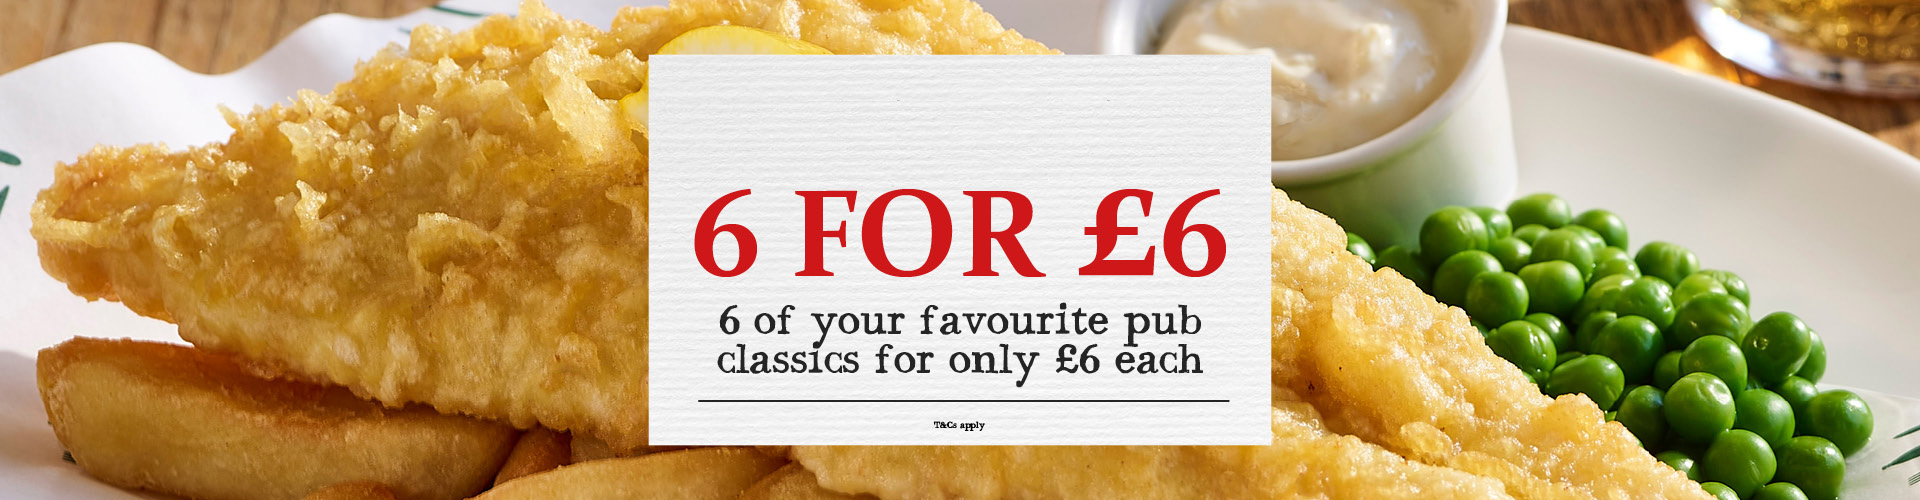 6 Classic Dishes for Only £6 Each!